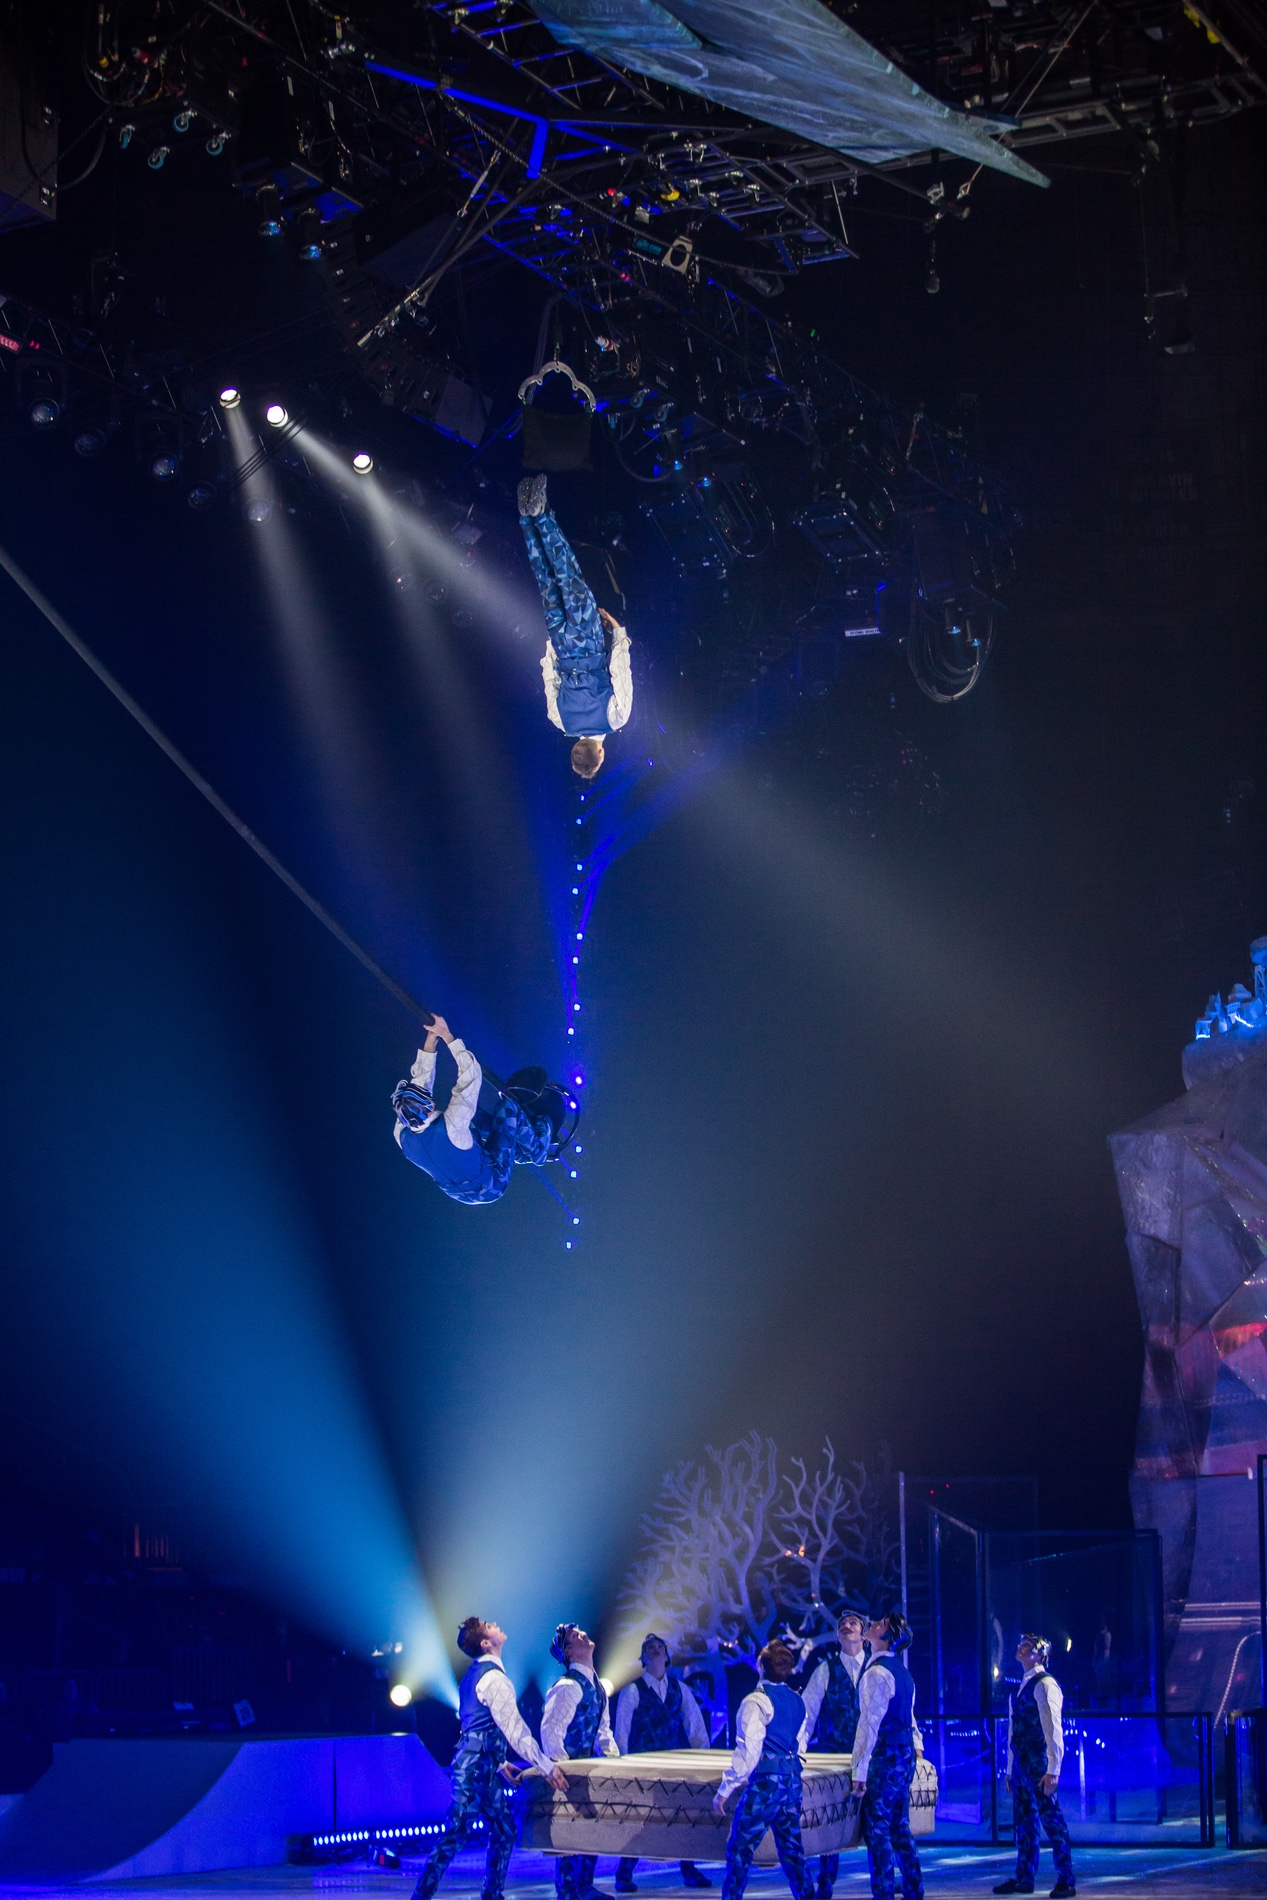 Pendulant Poles Act of Cirque du Soleil Crystal on Ice